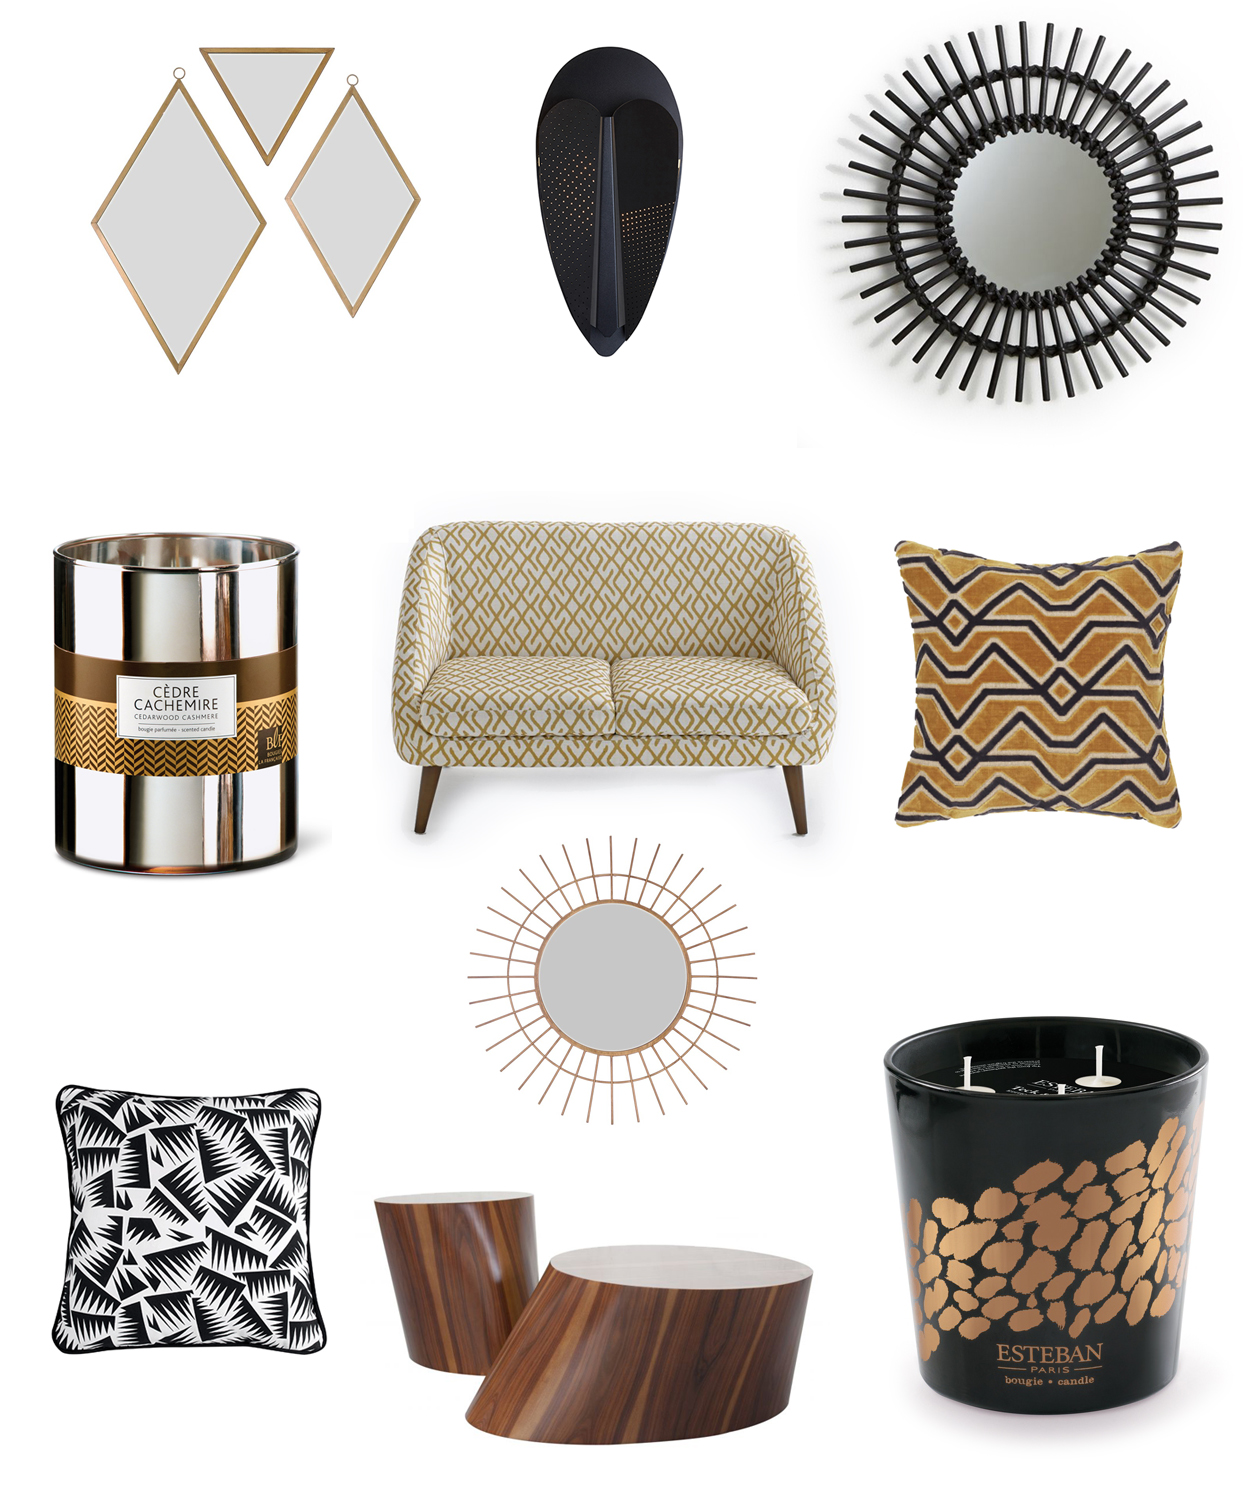 deco-africa-interior-design-inspiration-shopping